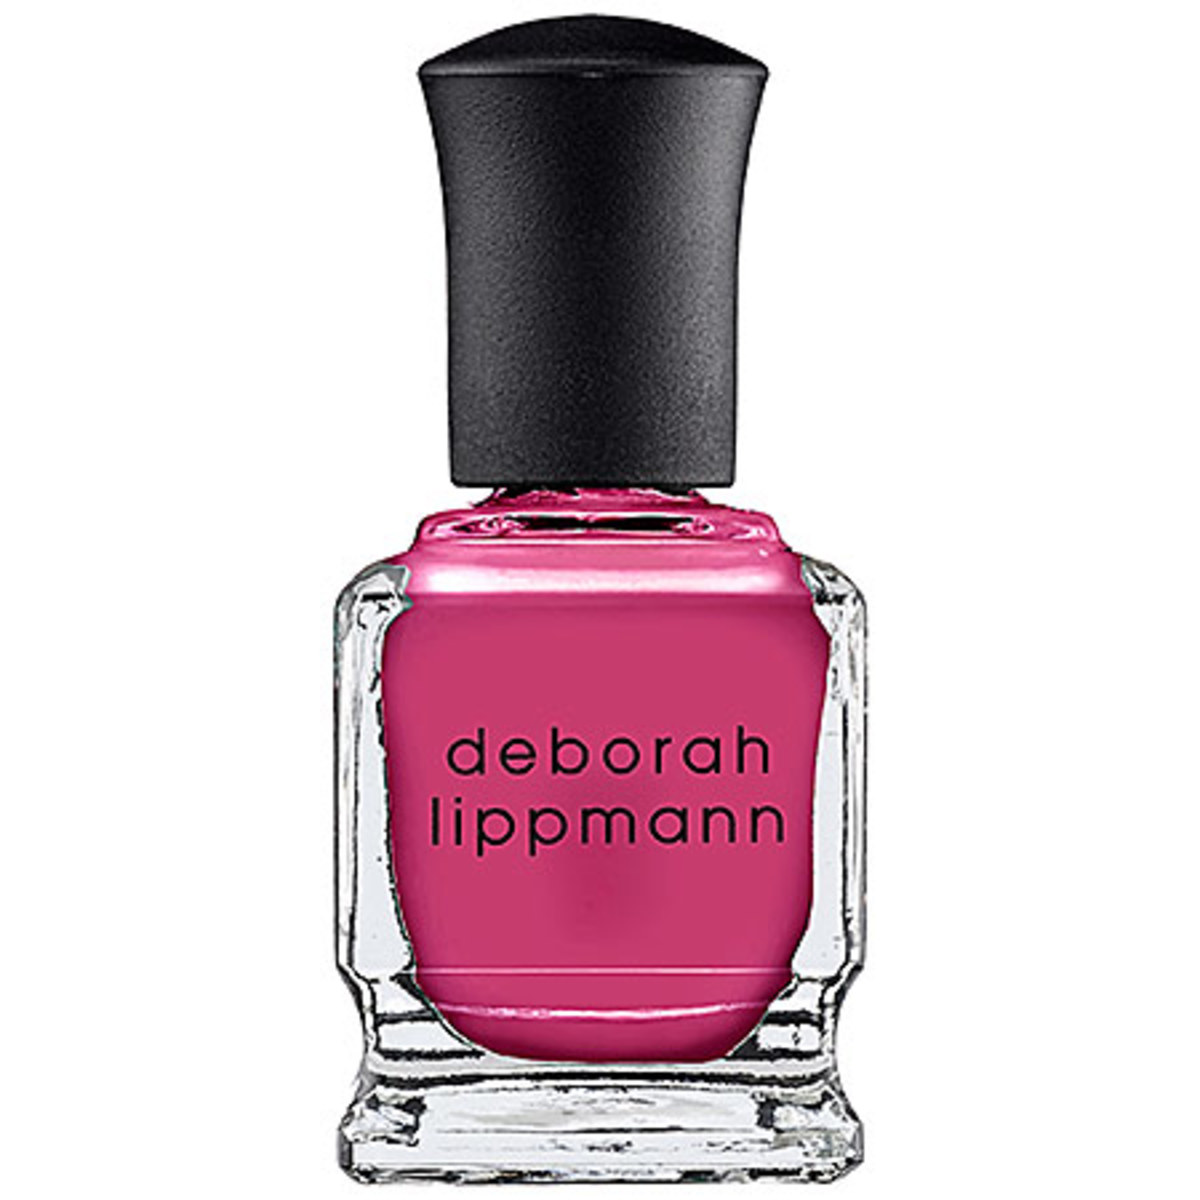 Deborah Lippmann Nail Lacquer in Between the Sheets